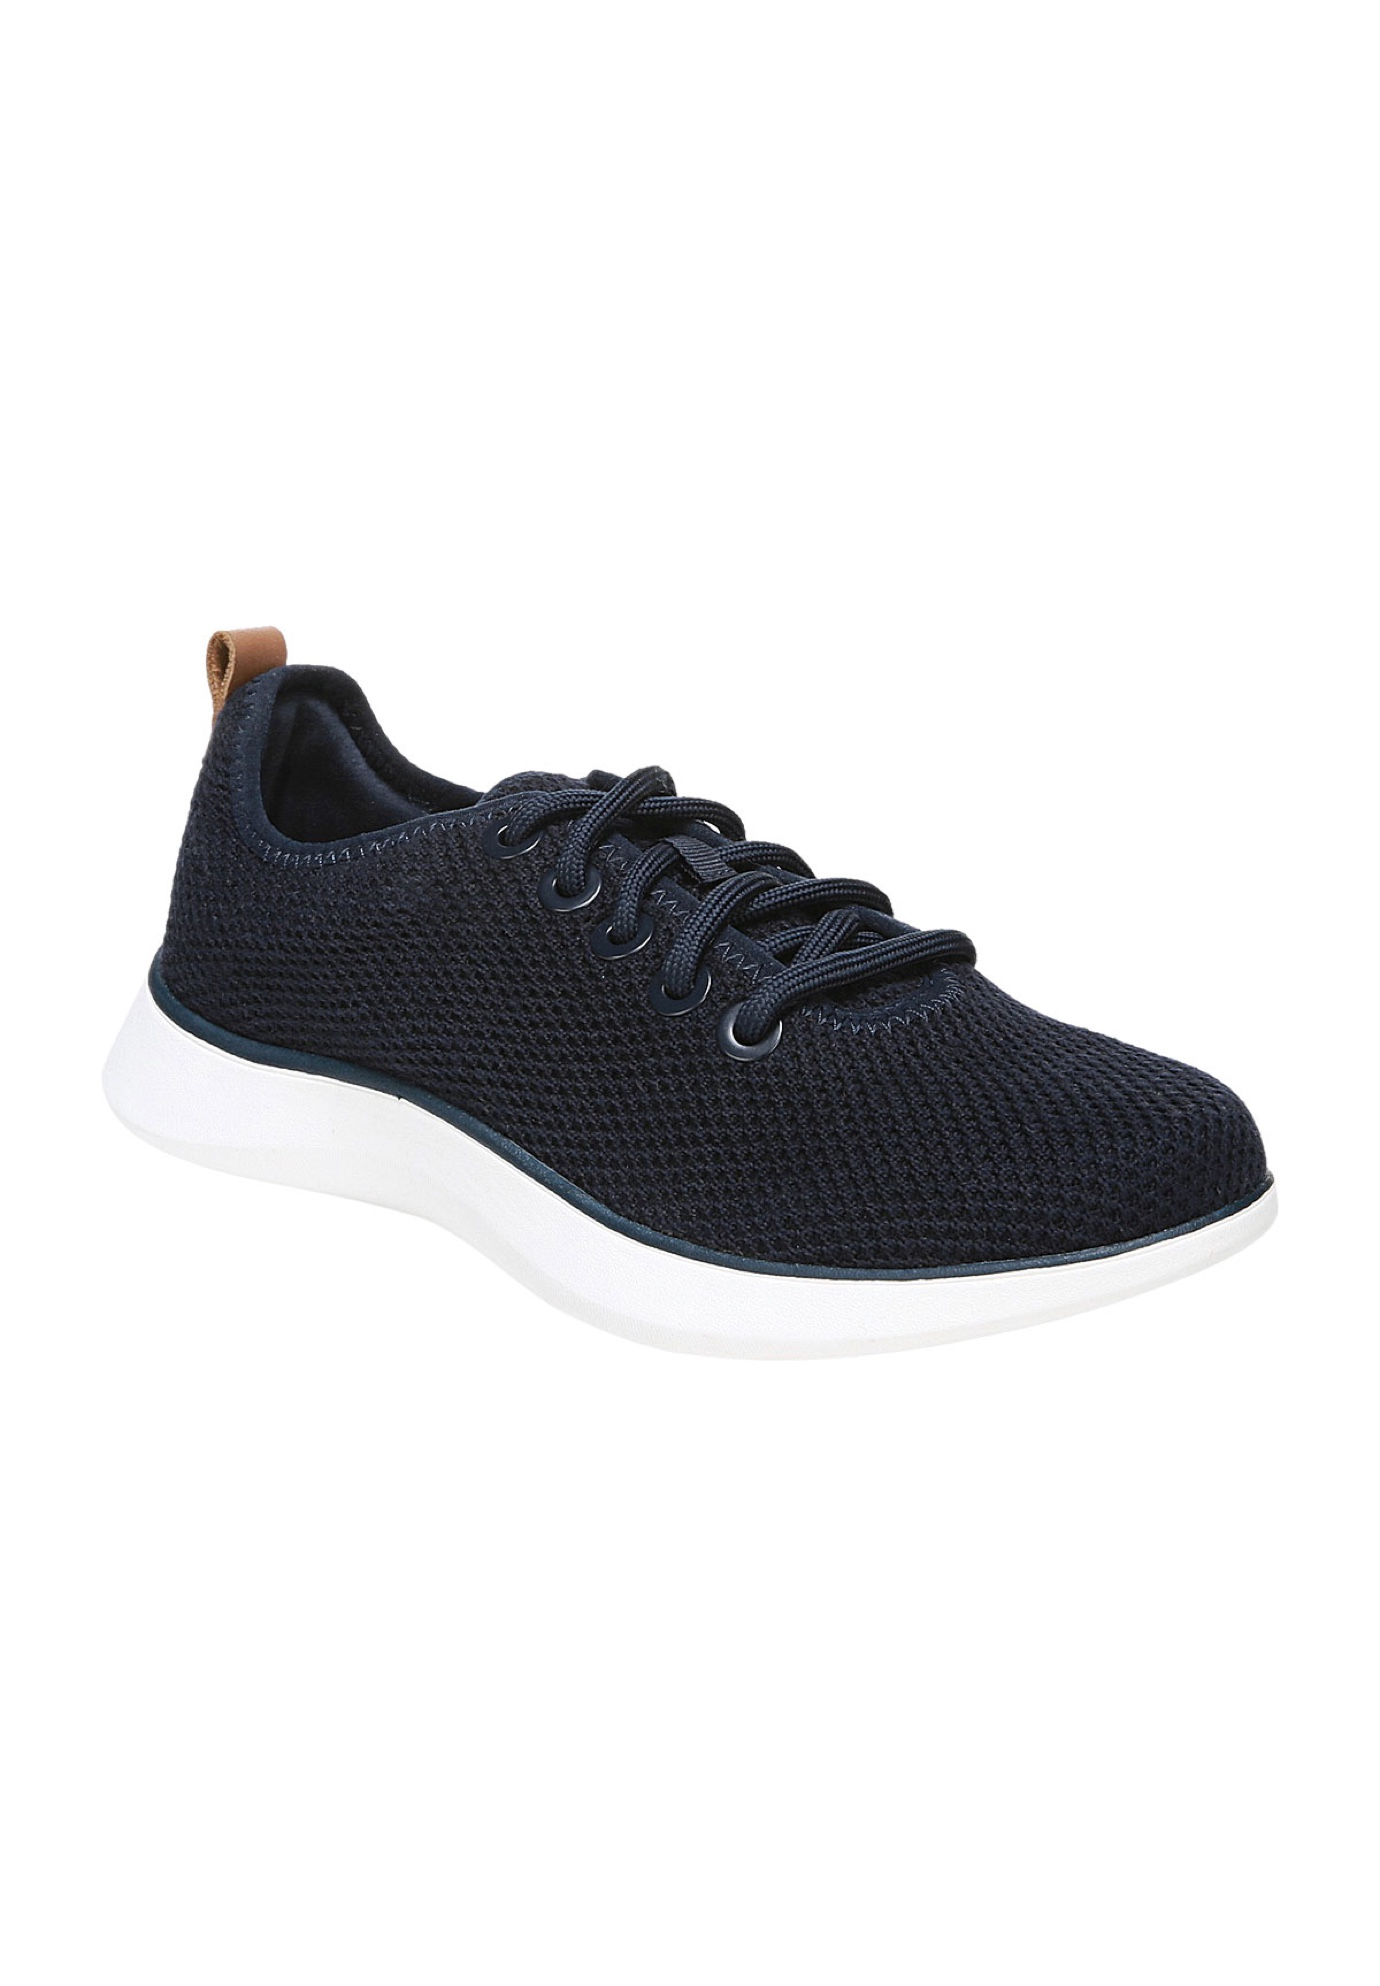 Freestep Sneaker by Dr. Scholl's,